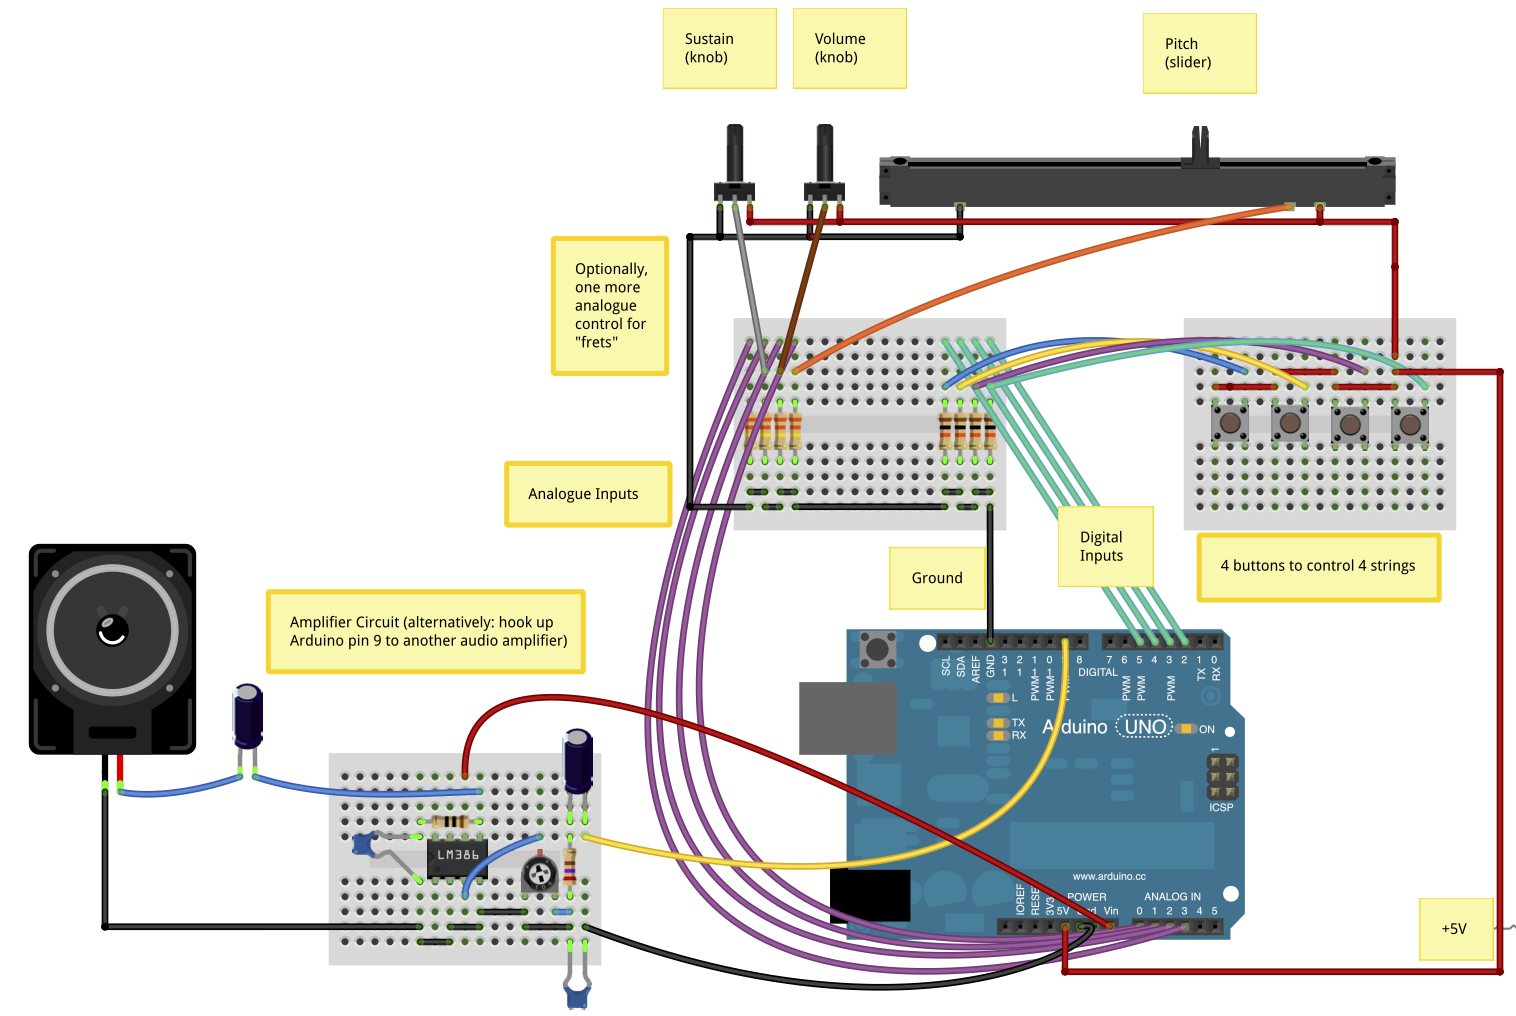 arduinitar bb diagram augmented instruments laboratory, c4dm arduinitar control4 wiring schematic at bakdesigns.co